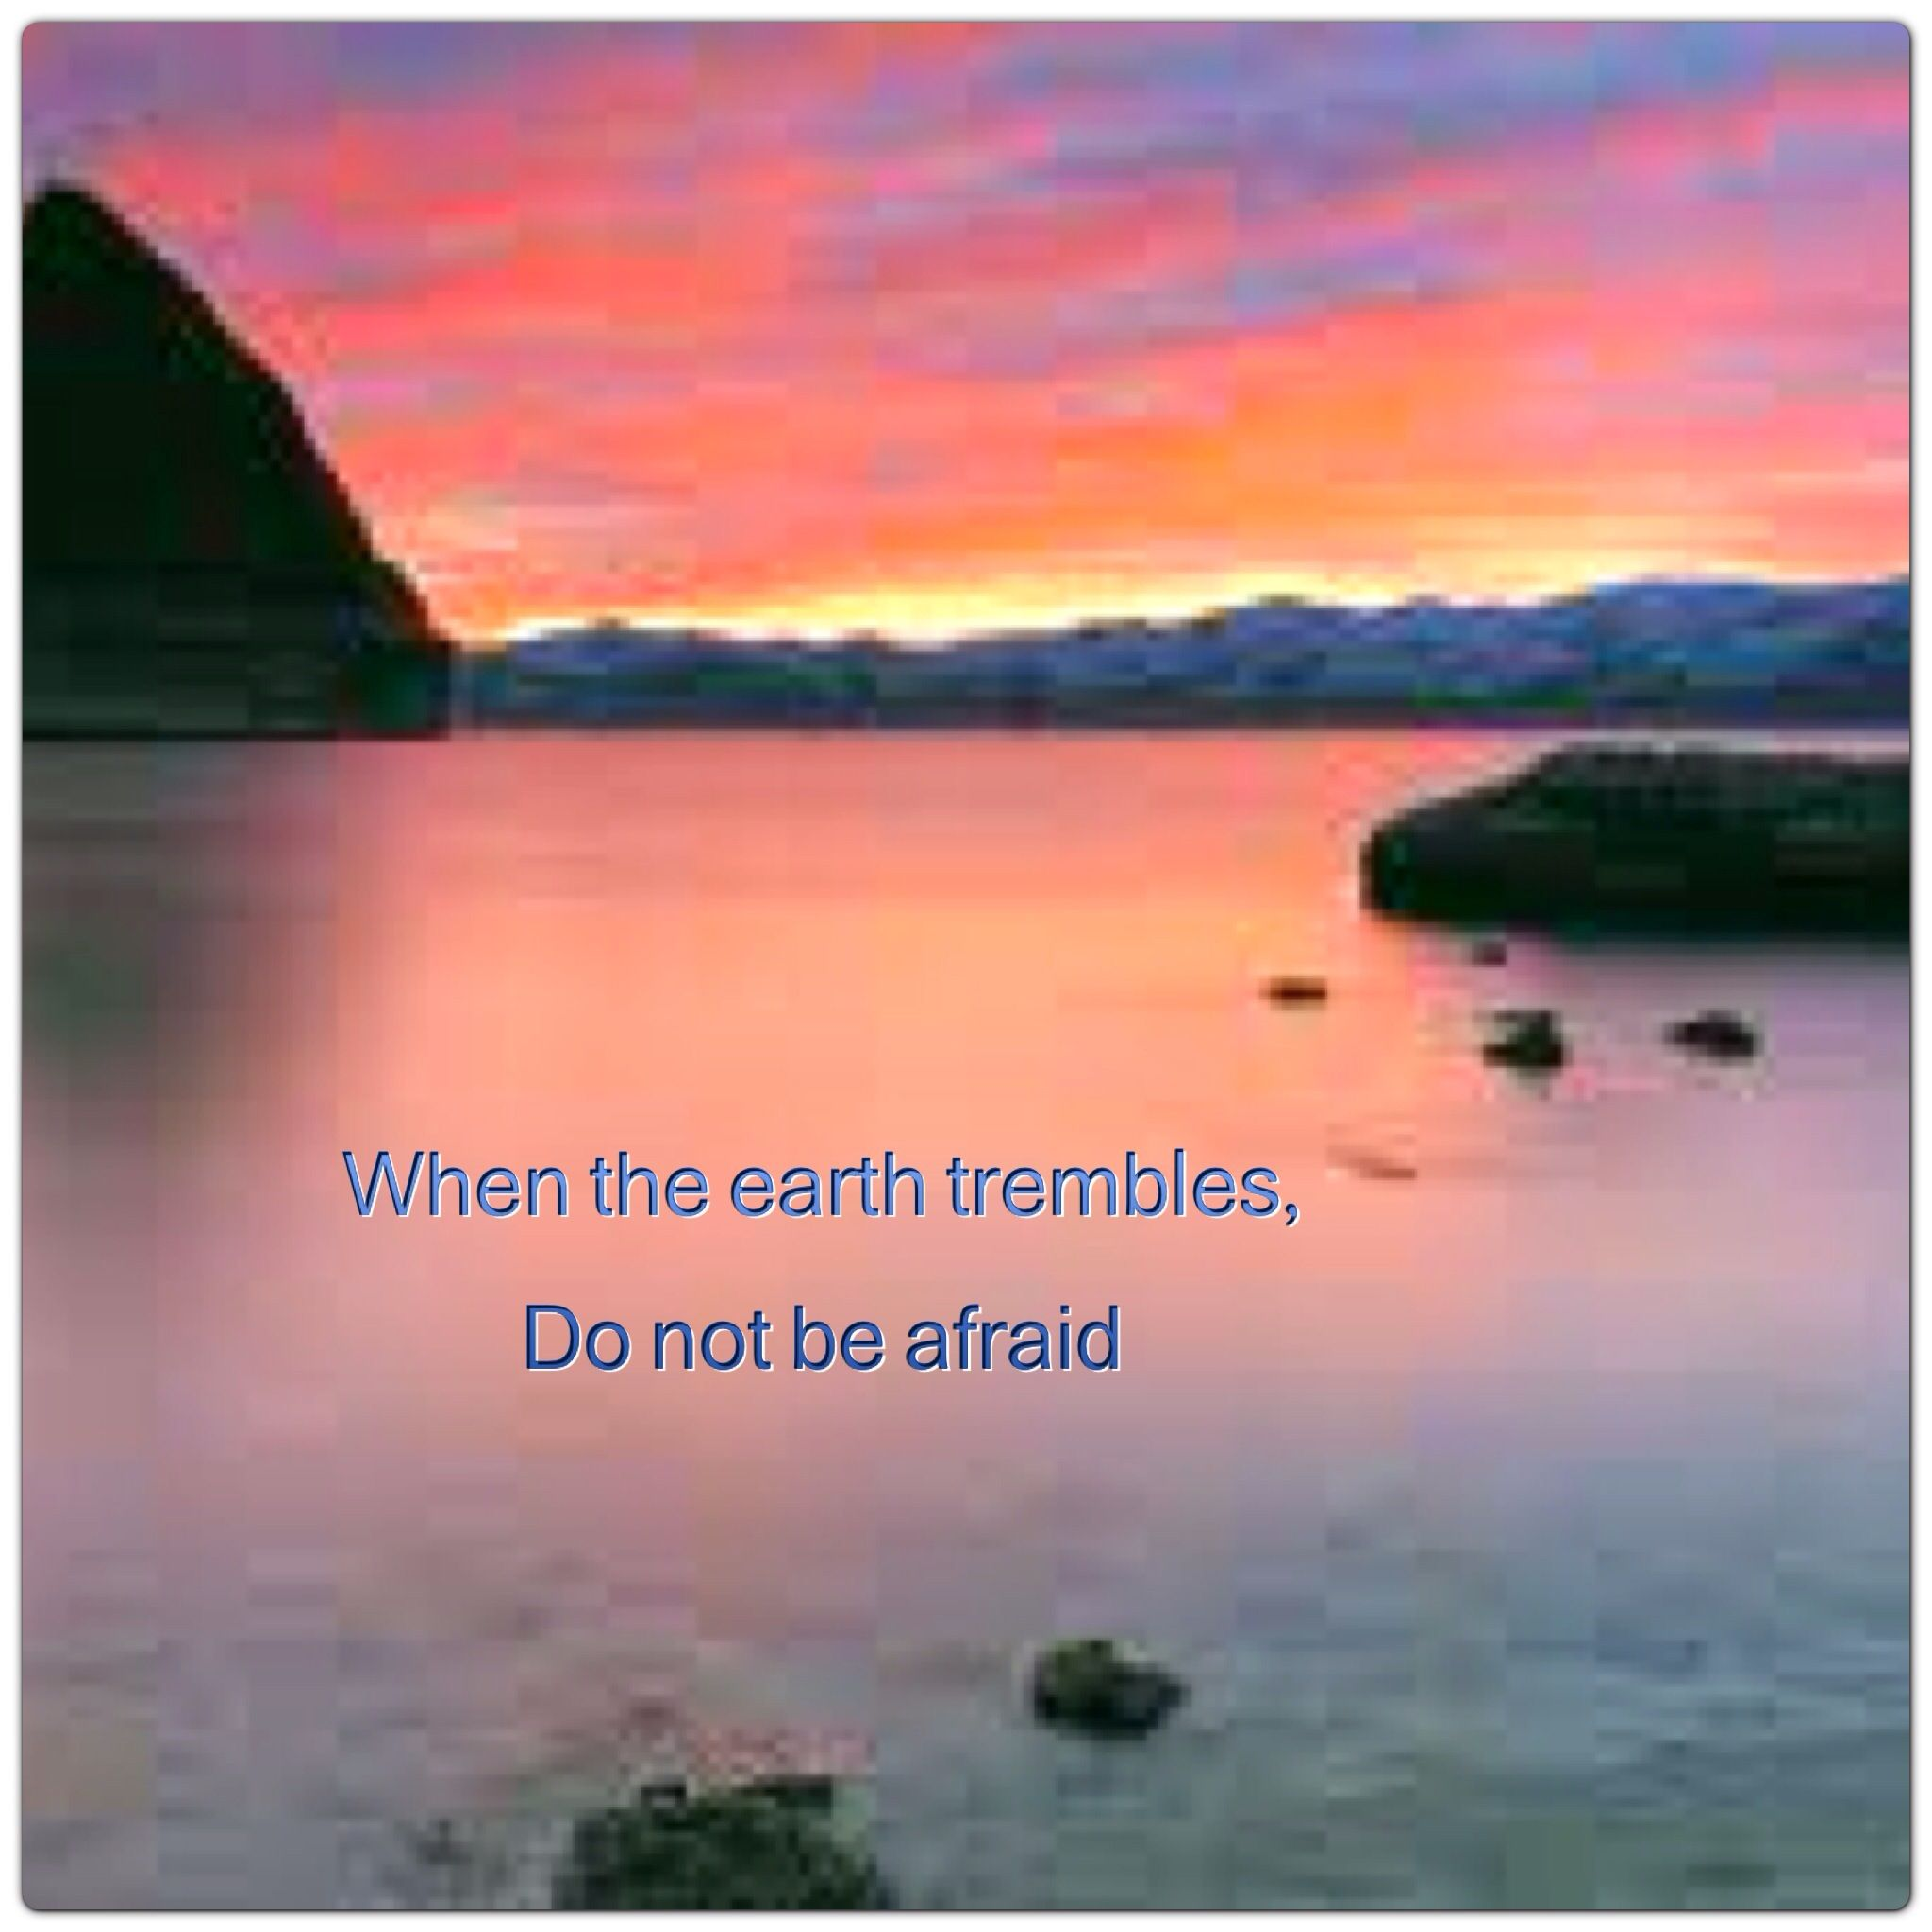 When the earth trembles - Paiute Indian quote